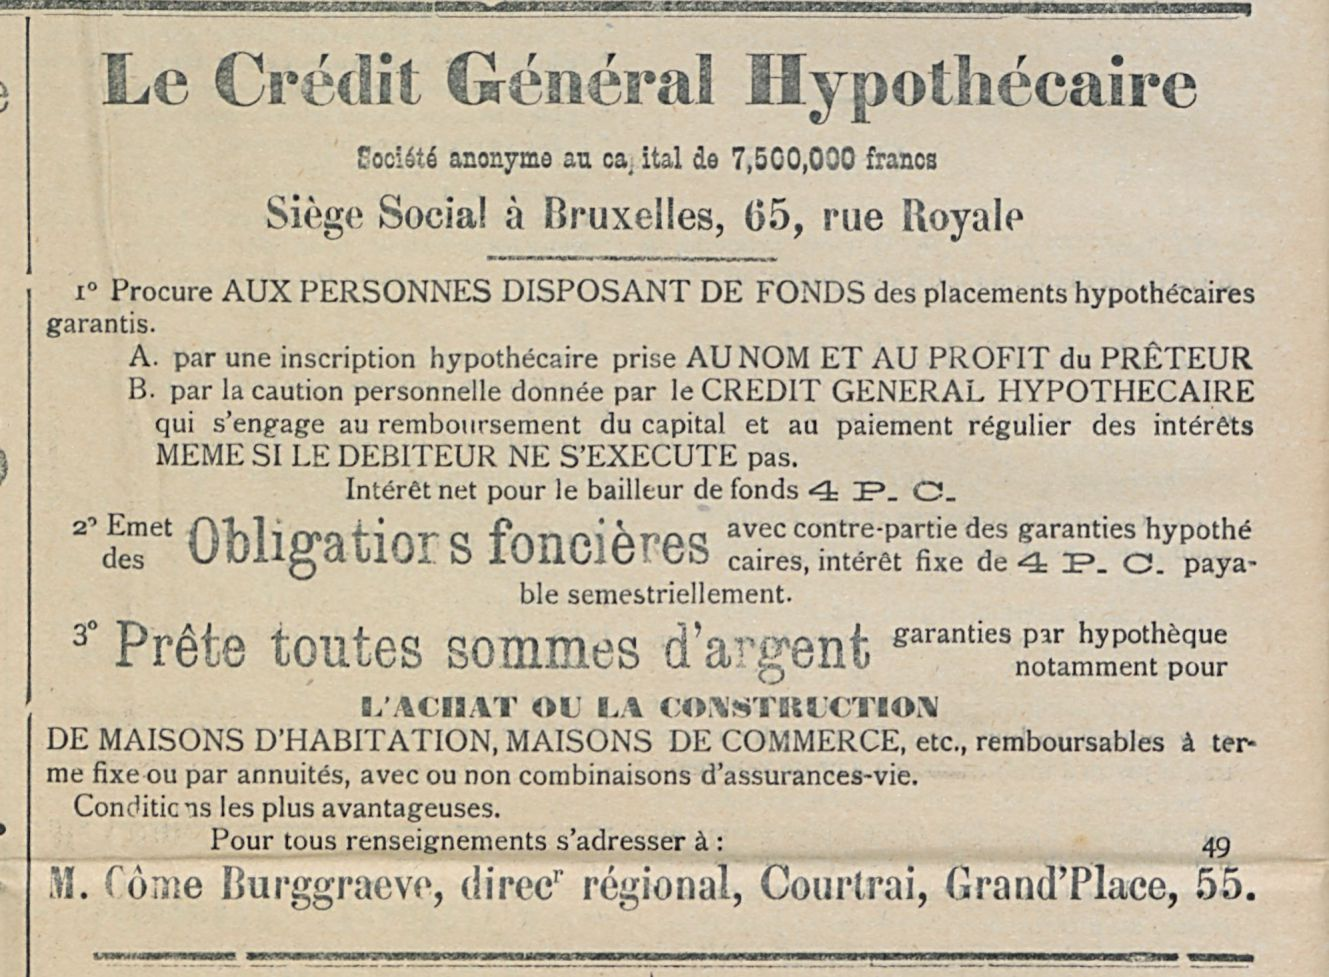 Le Credit General Hypothecaire